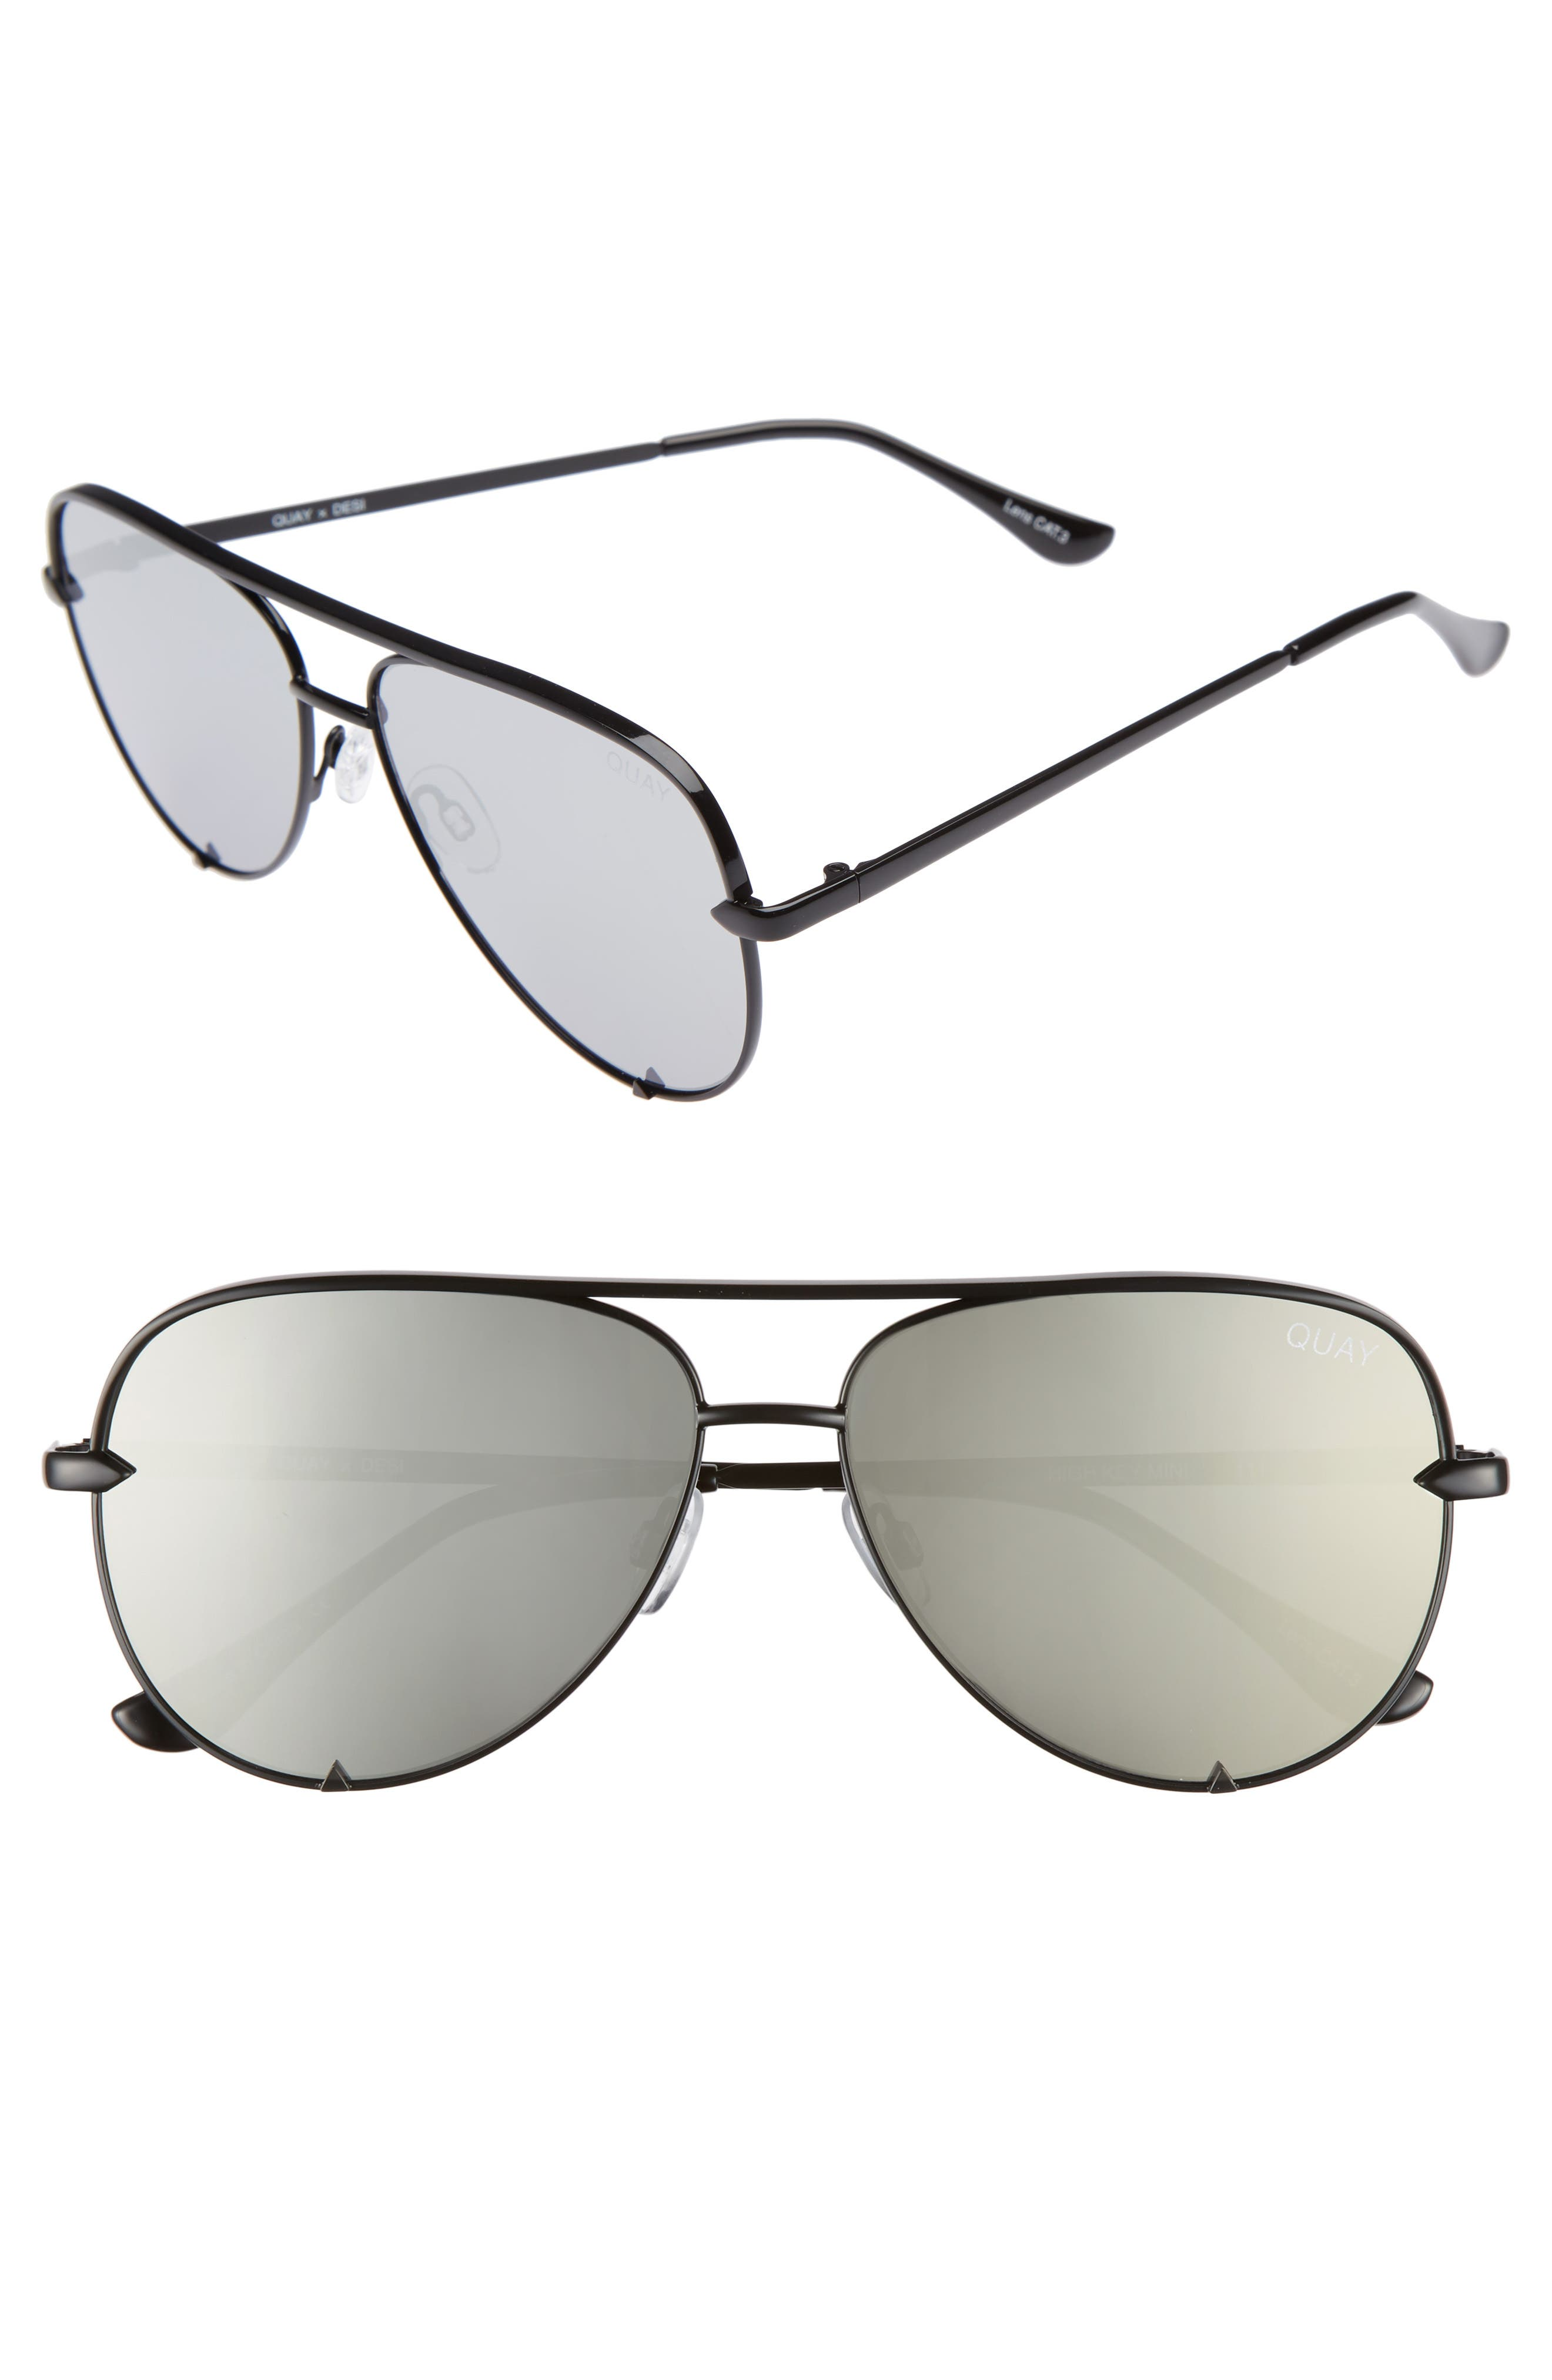 Quay Australia x Desi Perkins High Key Mini 57mm Aviator Sunglasses